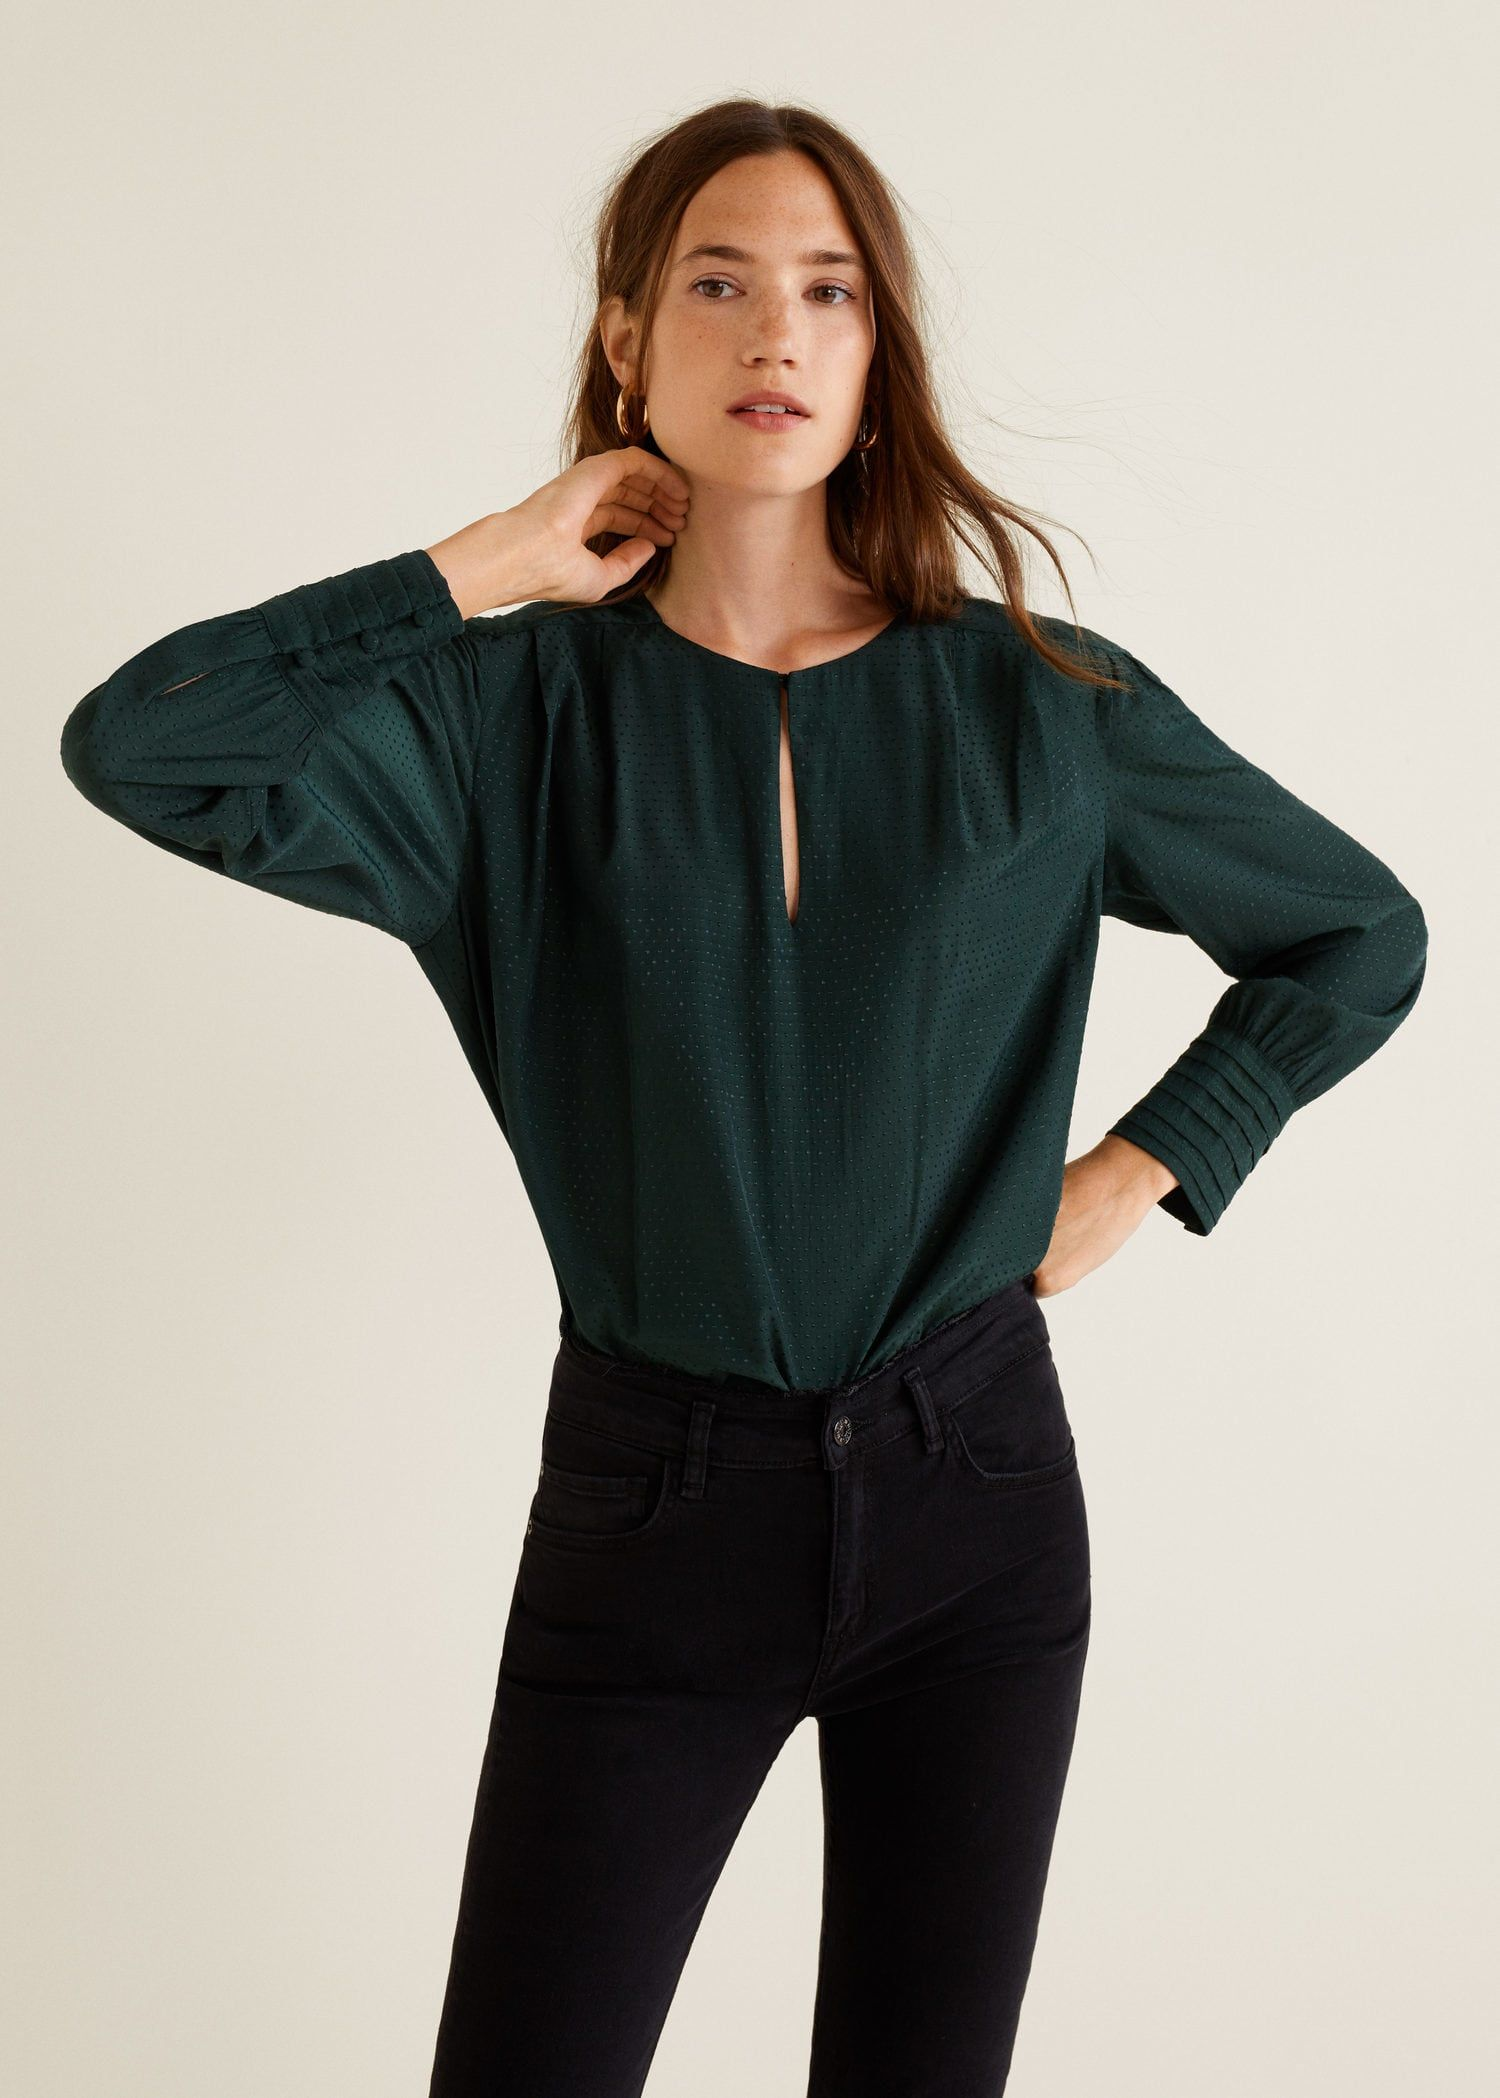 27fb6201f Pintuck detail blouse Blouses For Women, Green Blouse, Shirt Blouses,  Shirts, Pin